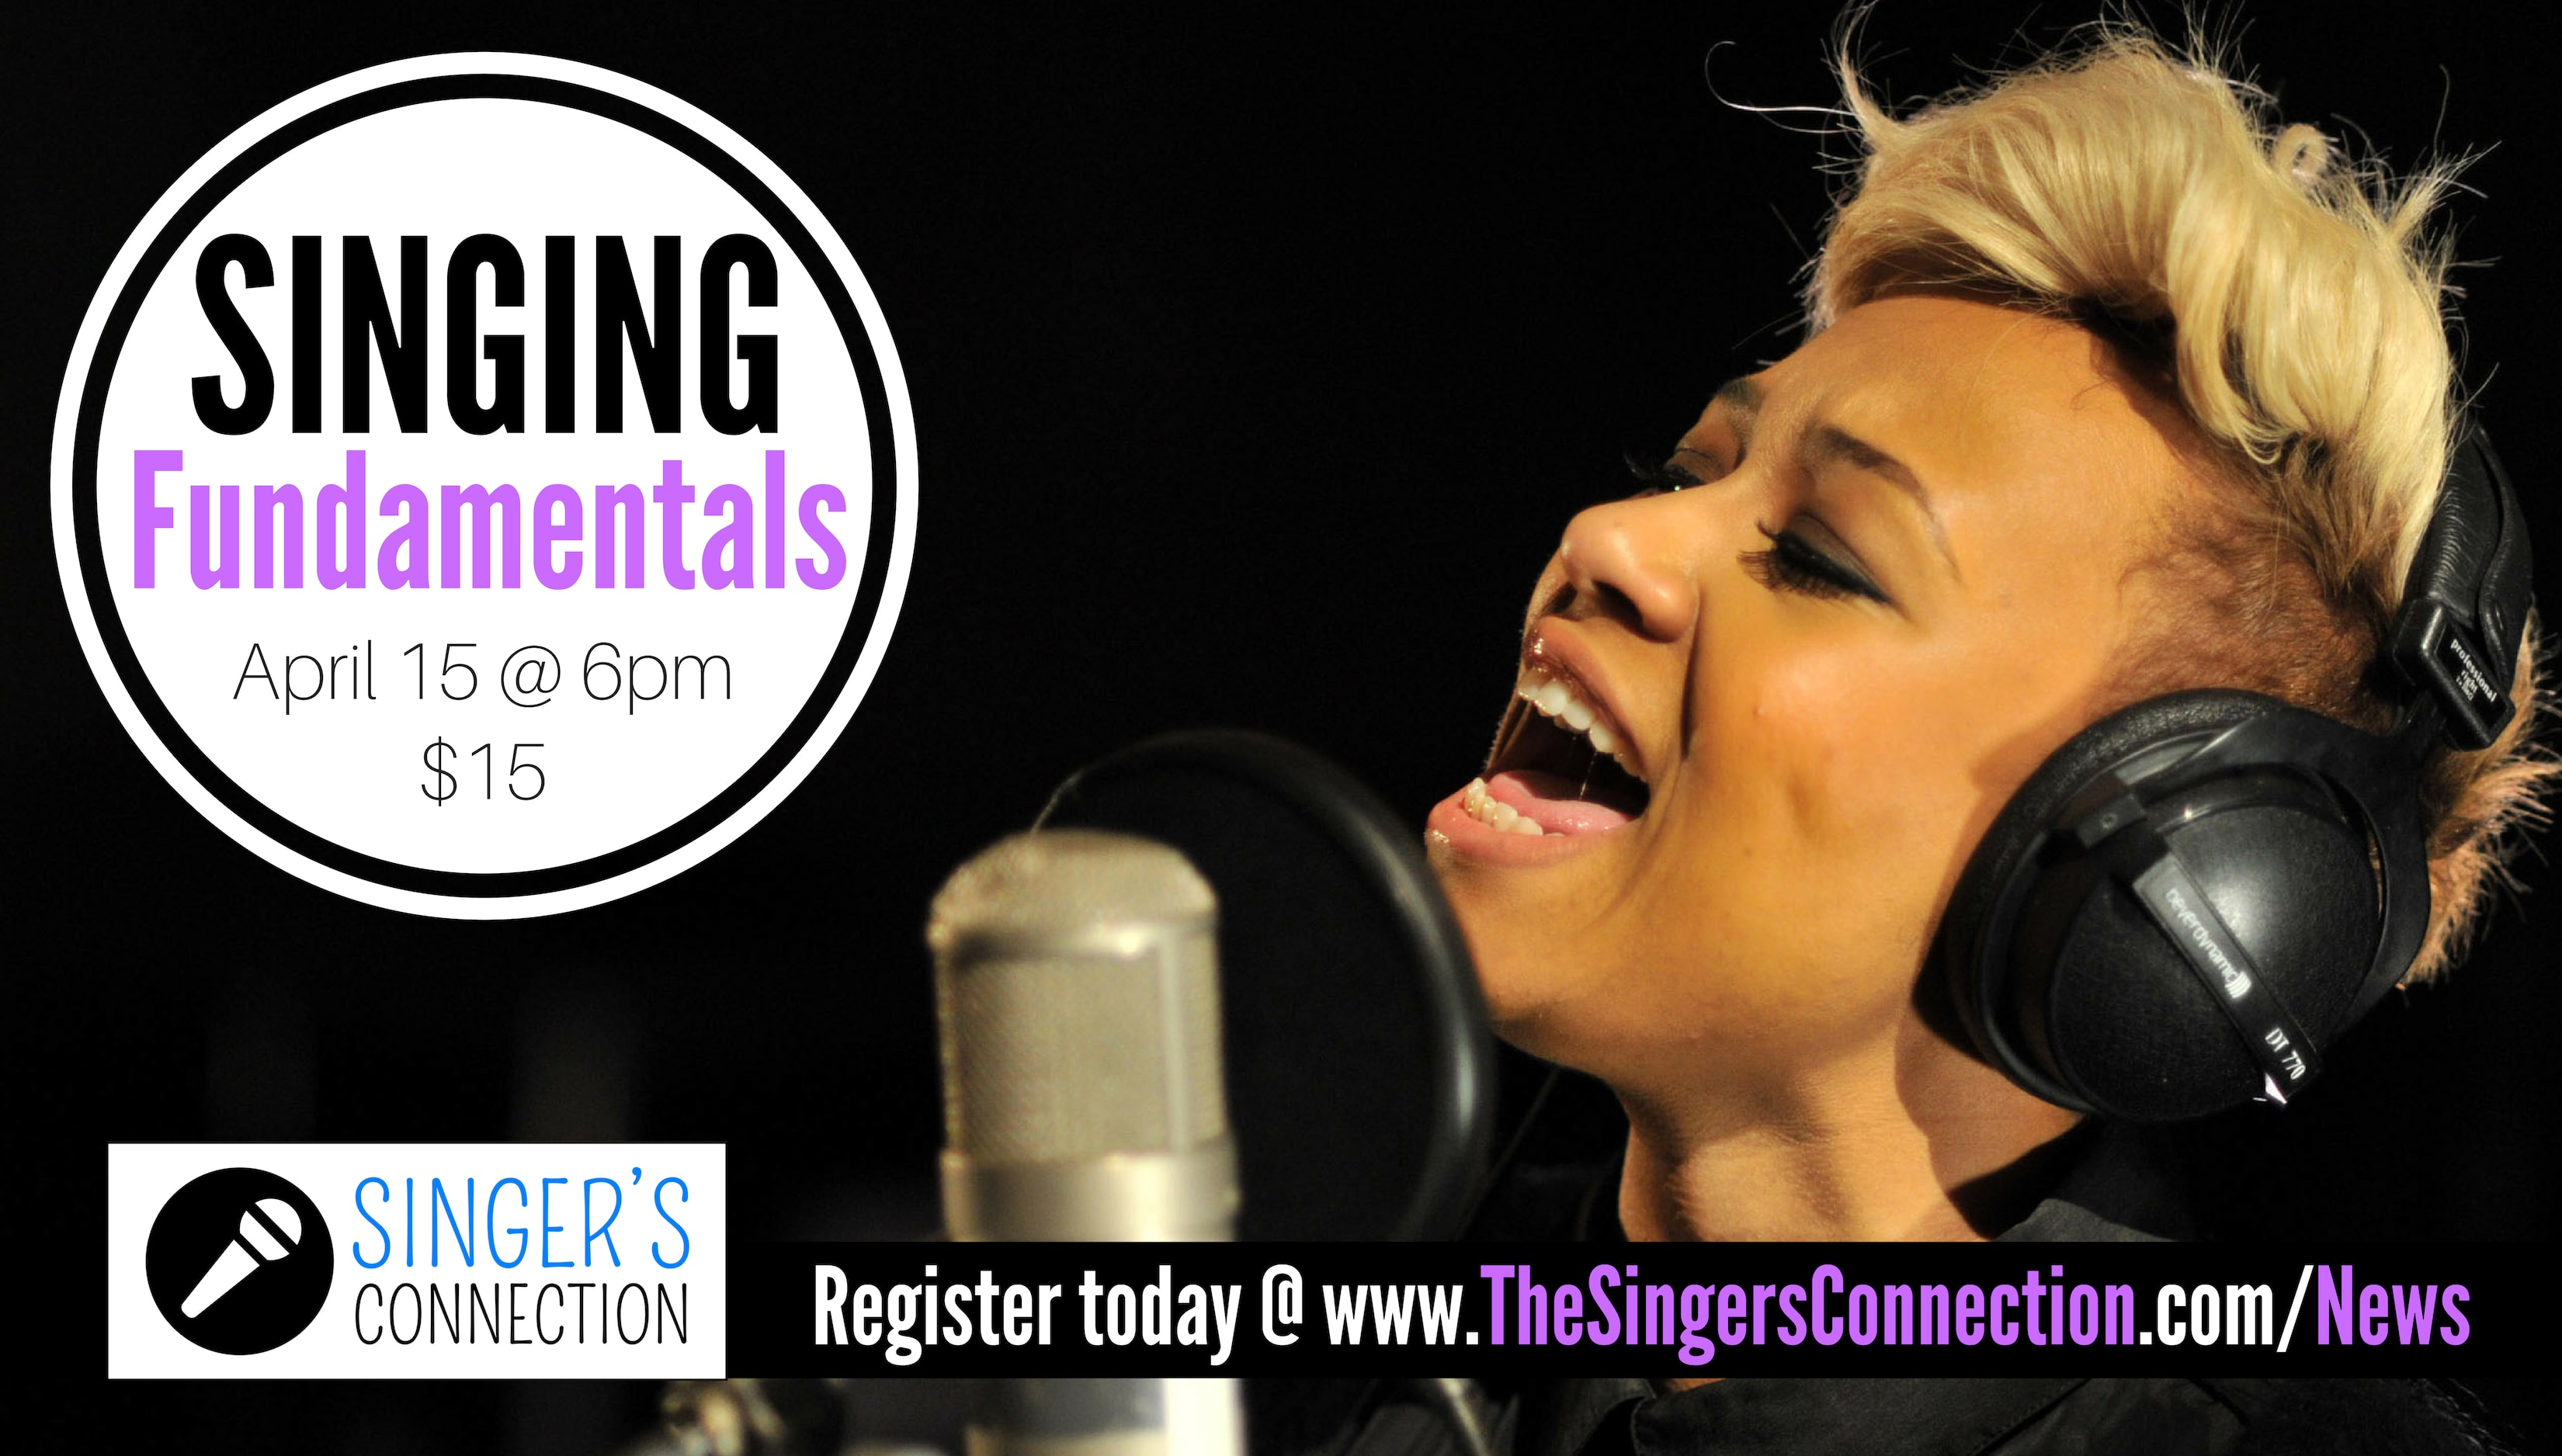 Singing Fundamentals!  Learn how to effectively apply correct vocal technique to YOUR style of singing!